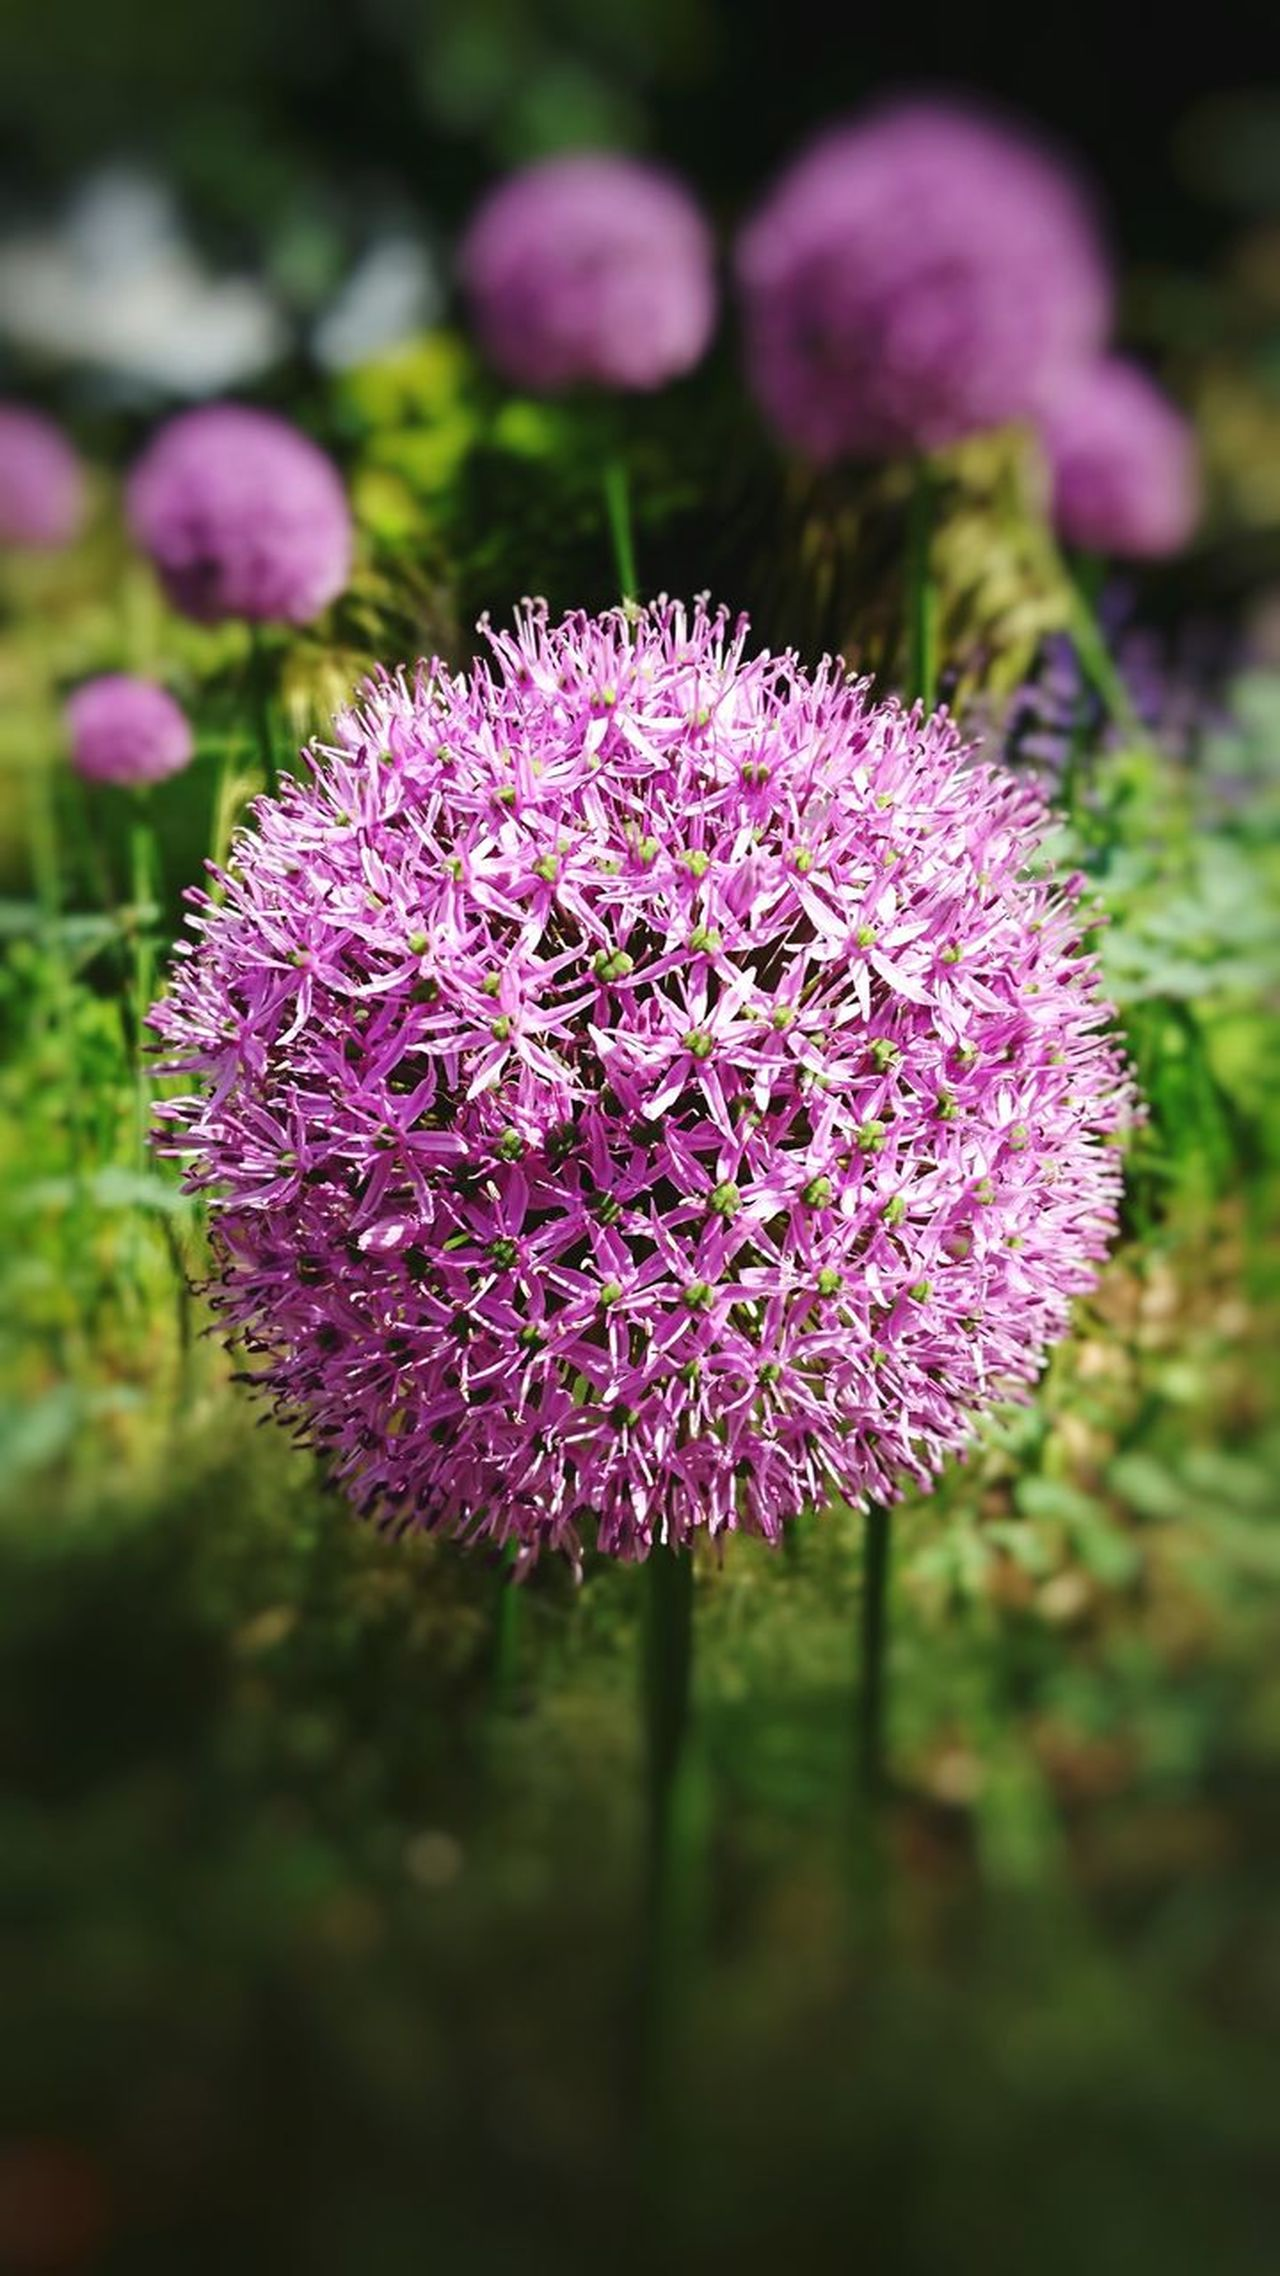 Flower Purple Plant No People Nature Close-up Outdoors Day Beauty In Nature Fragility Freshness Flower Head Growth Grass Thistle Eyem Nature Lovers  Freshness Xperiaxzcam